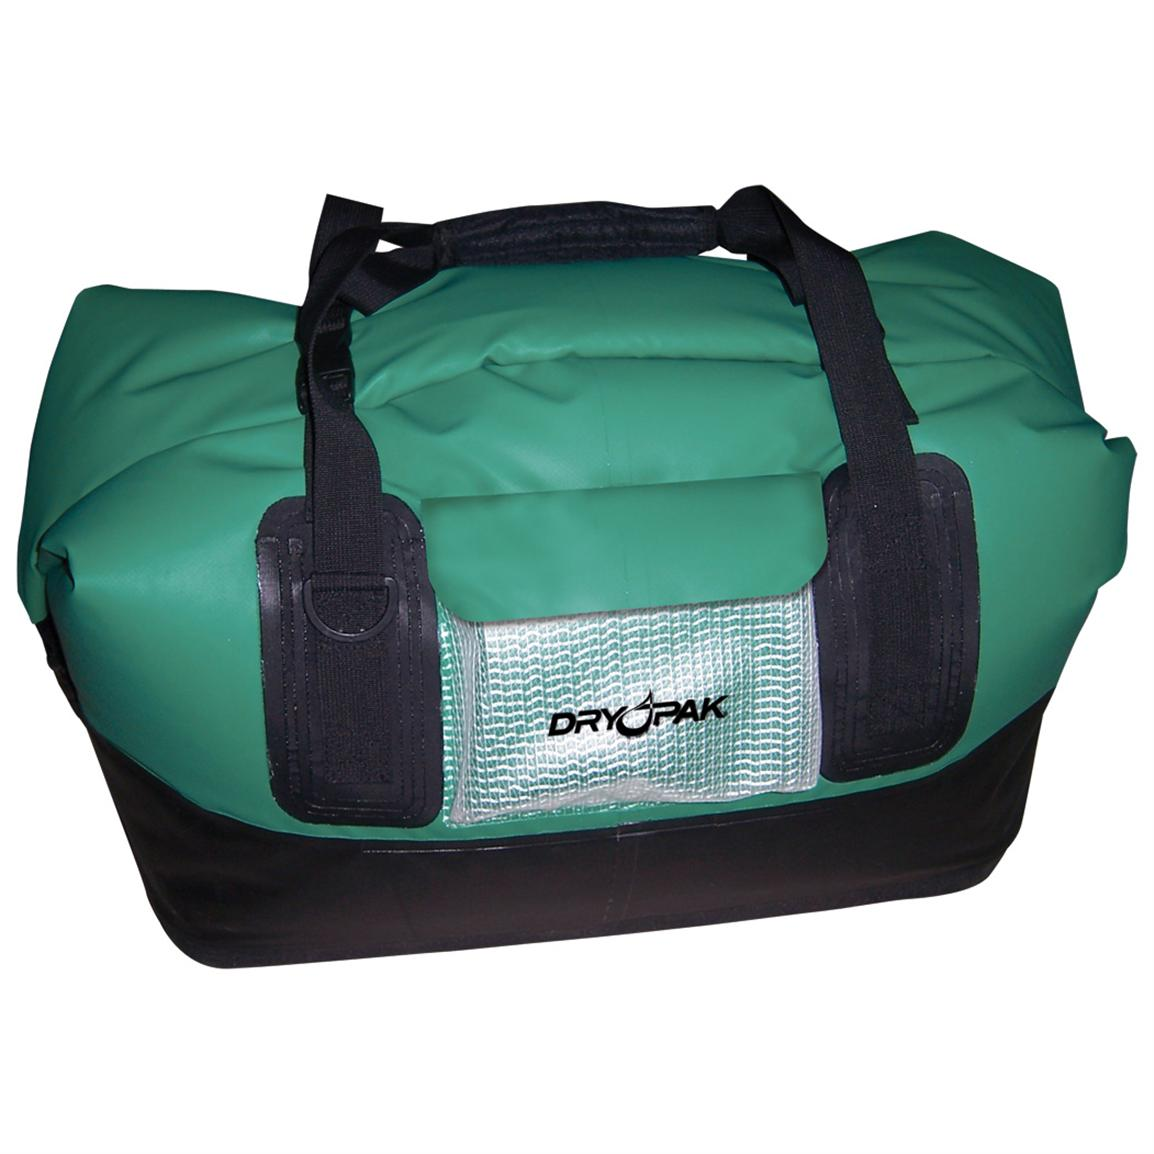 Dry Pak Waterproof Roll-top Duffel Bag, Green